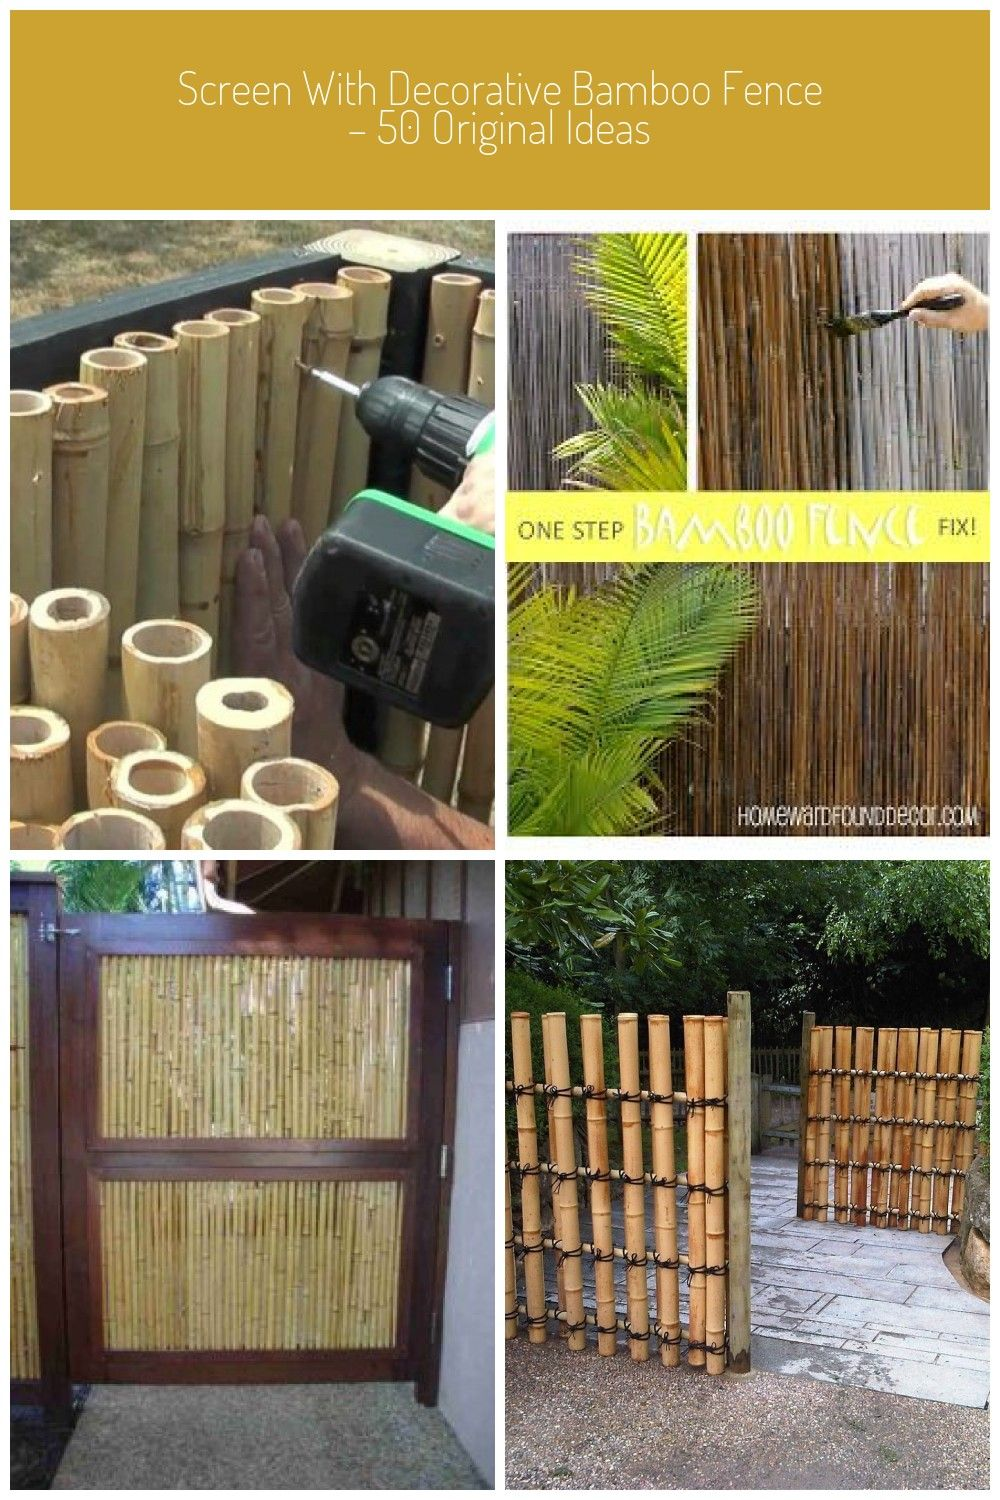 Screen with decorative bamboo fence  50 original ideas fence Screen with decorative bamboo fence  50 original ideas